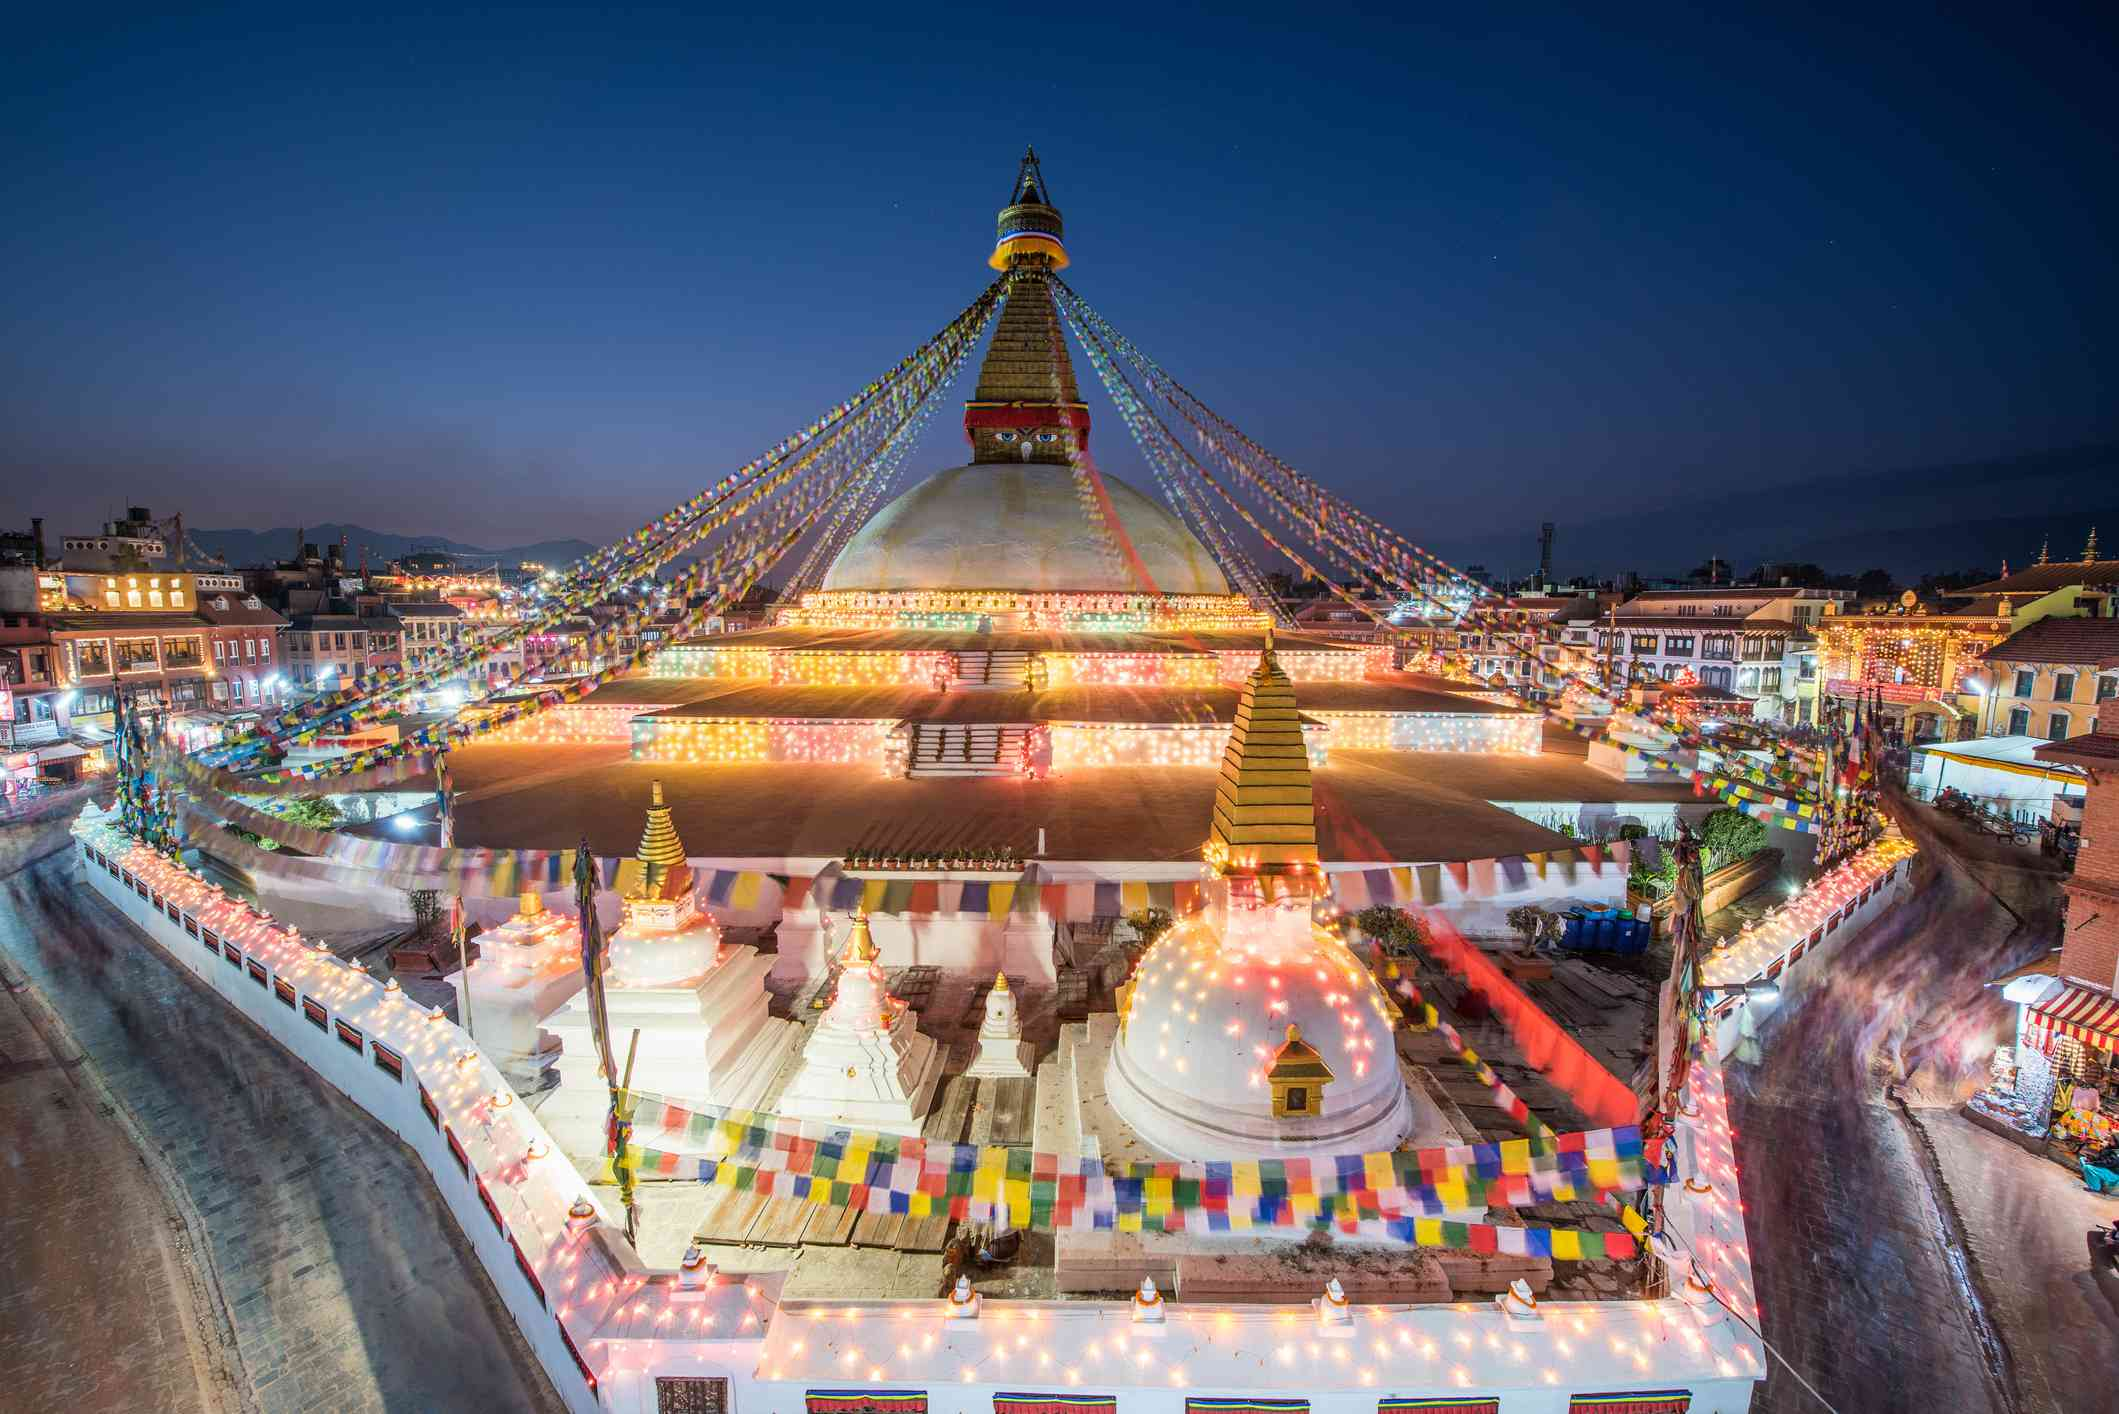 tall Buddhist stupa strung with flags and lit up at night